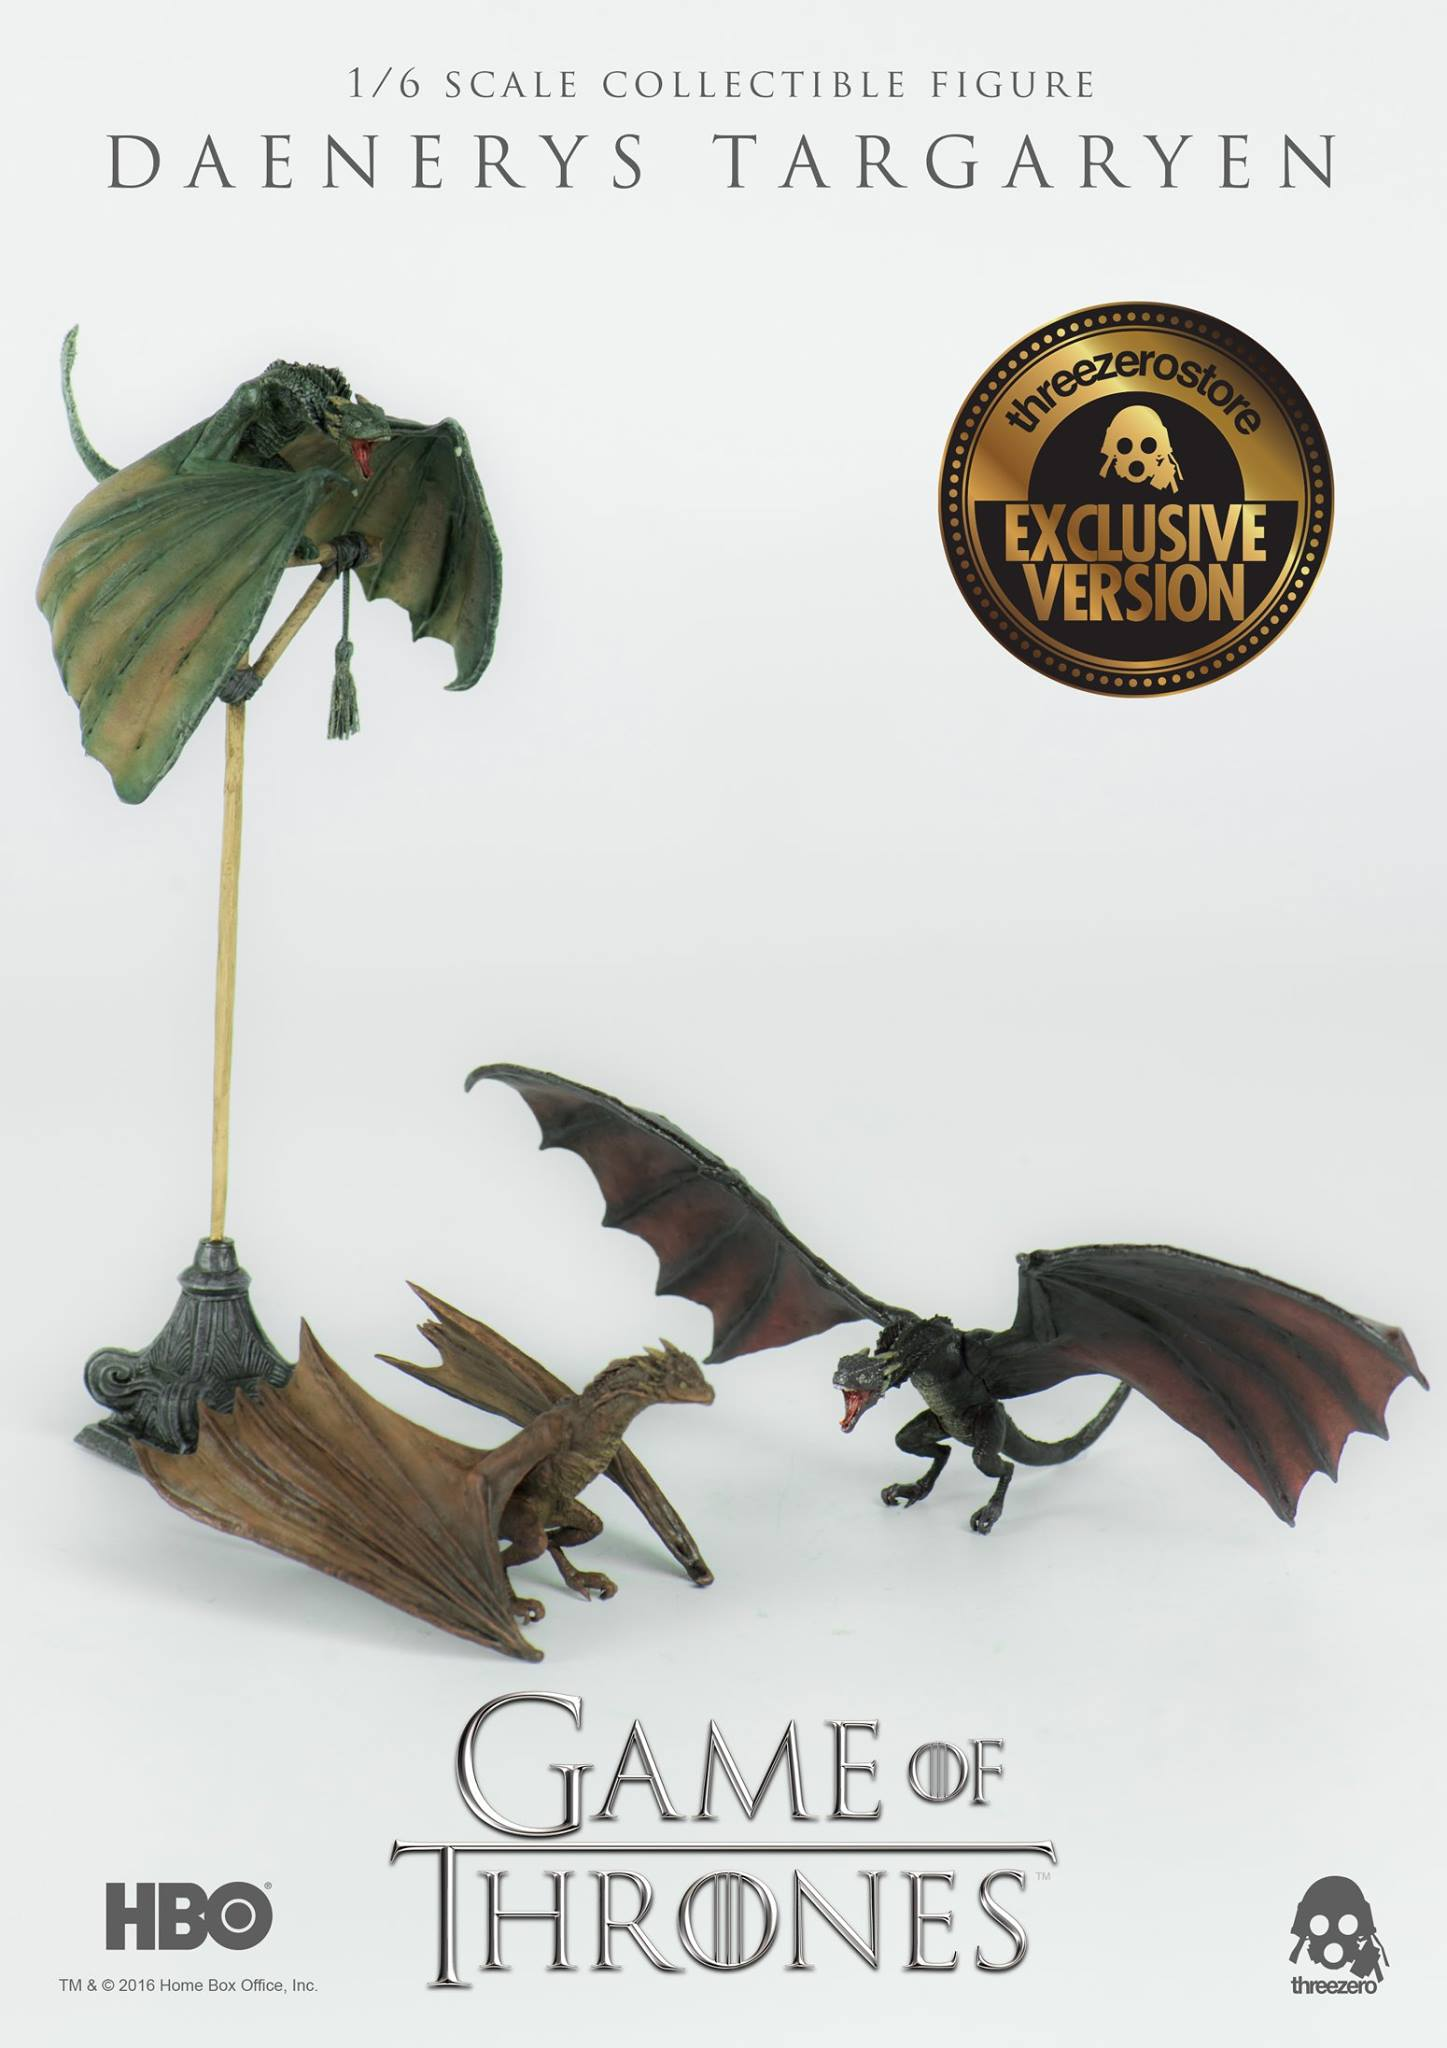 Game Of Thrones Toys : Threezero game of thrones daenerys targaryen scale